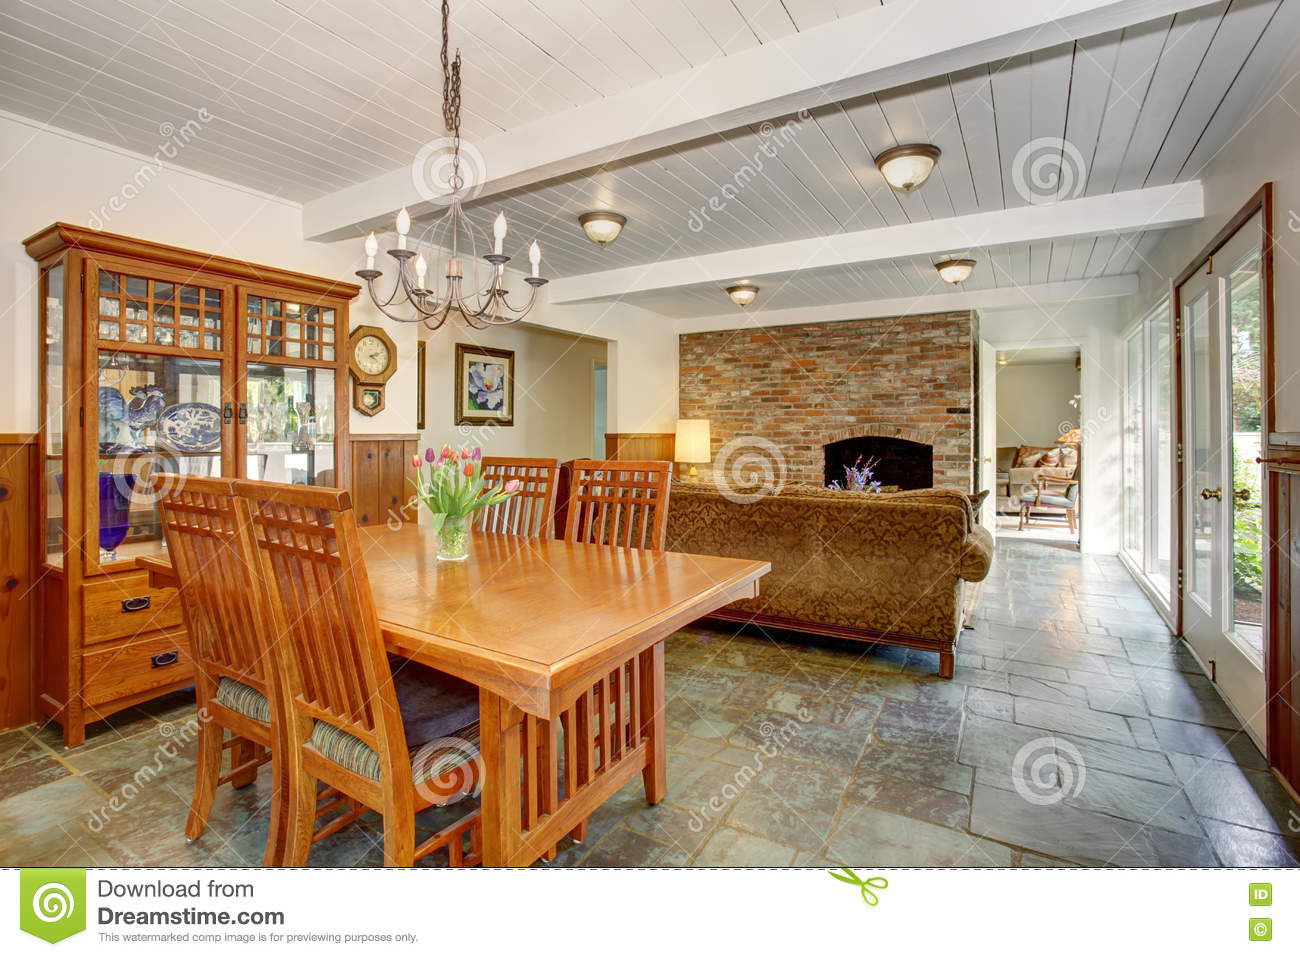 house interior with open floor plan, including dining room, living